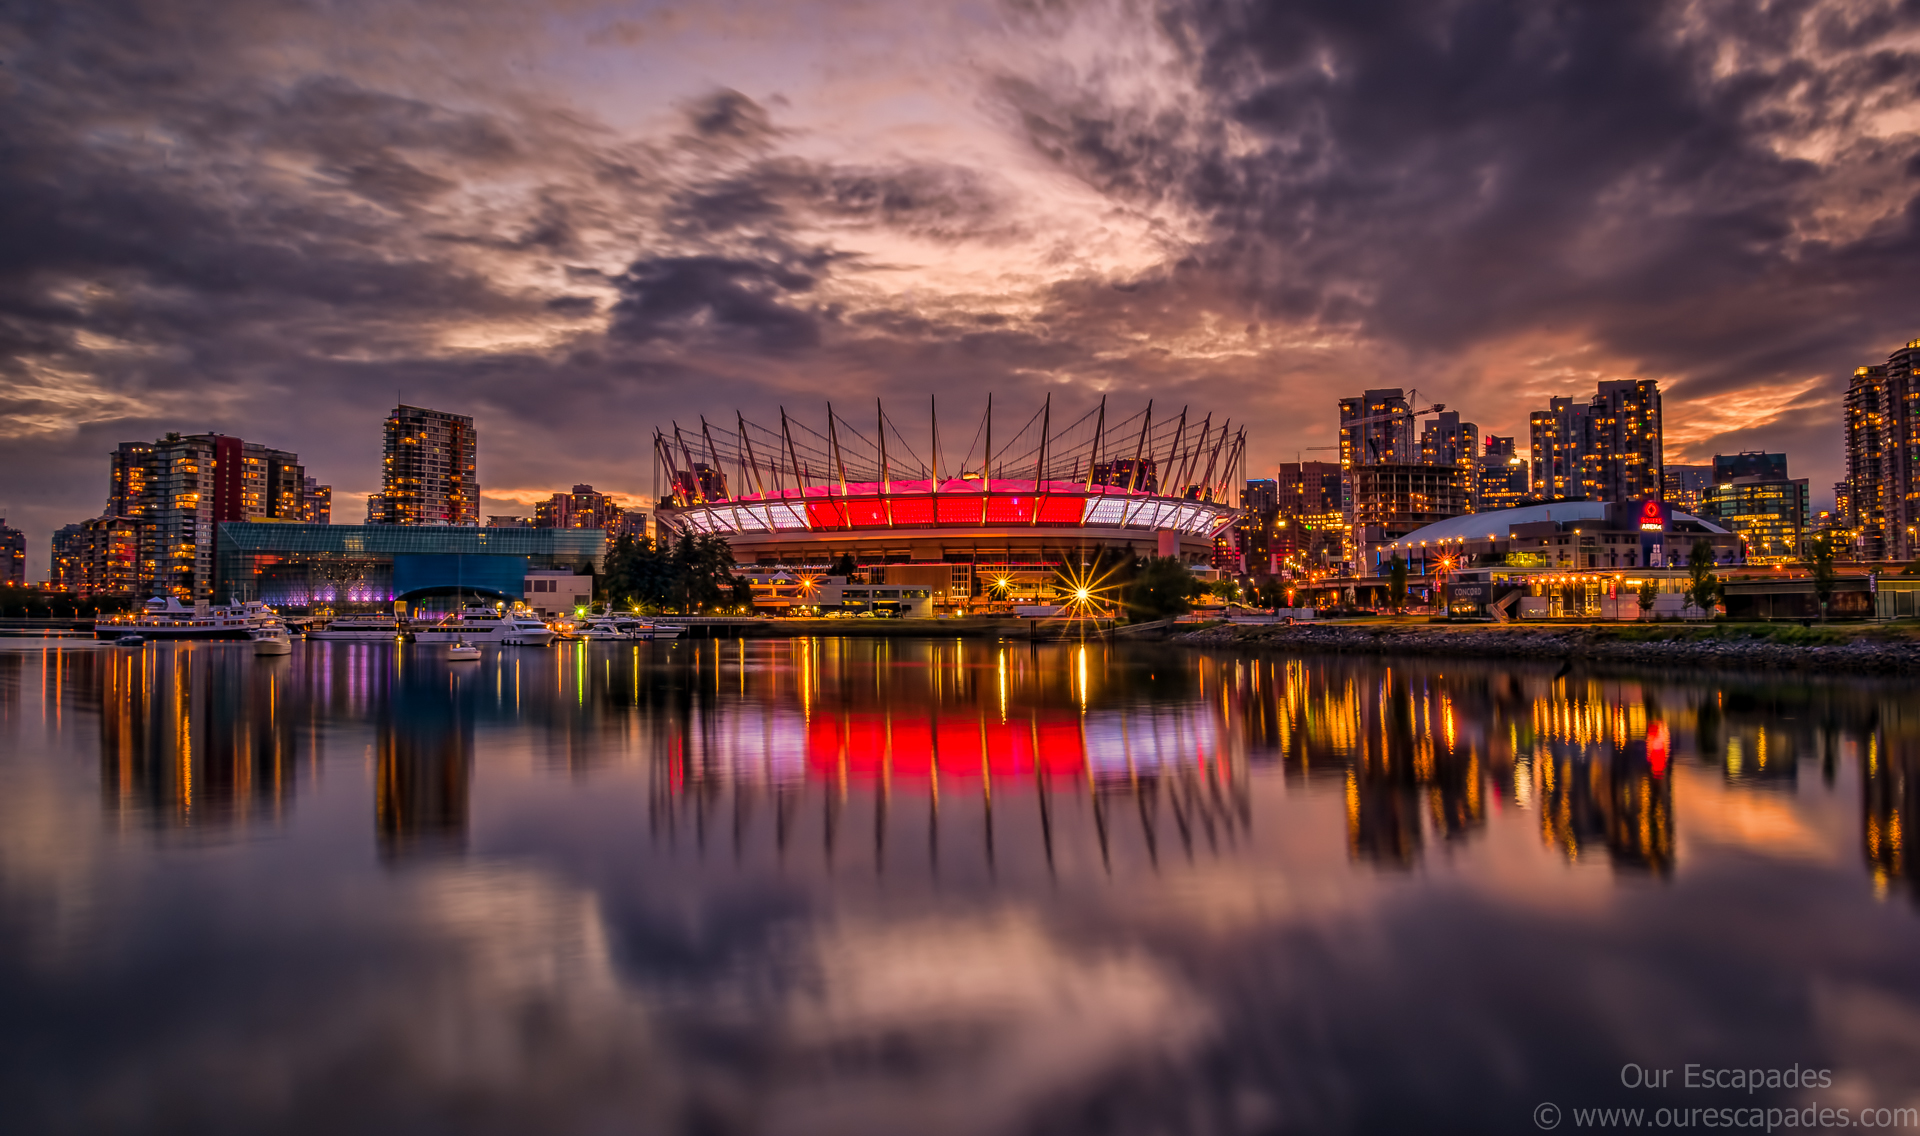 Our Escapades - Vancouver Downtown Dusk BC Place Stadium